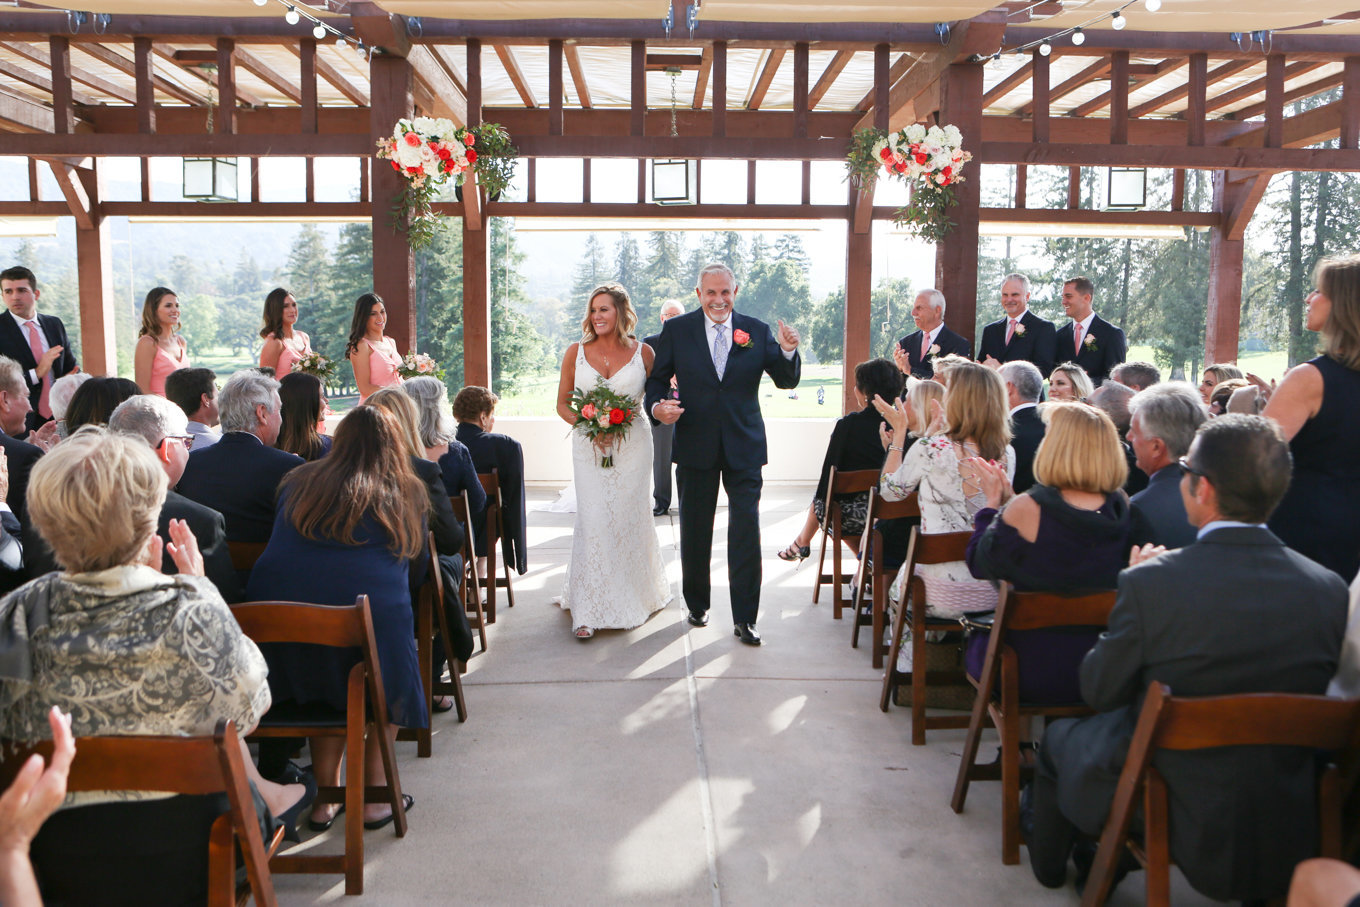 Stunning northern california wedding, bride and groom at ceremony